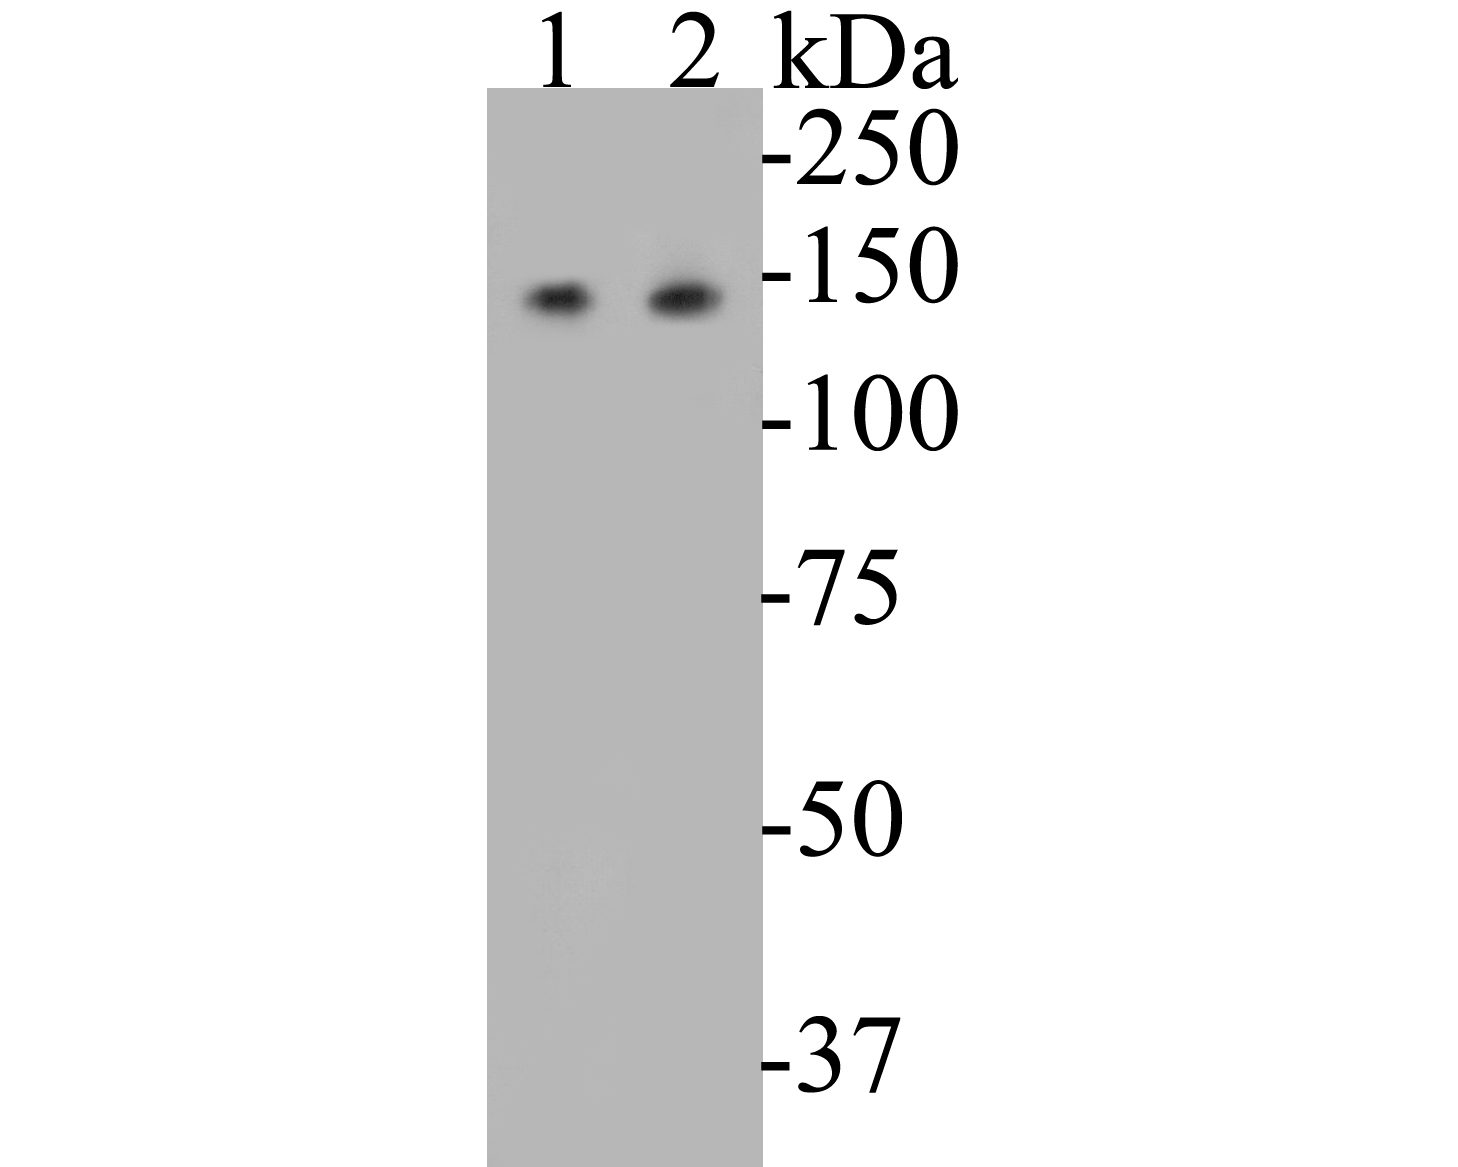 Western blot analysis of USP28 on different lysates. Proteins were transferred to a PVDF membrane and blocked with 5% BSA in PBS for 1 hour at room temperature. The primary antibody (EM1901-46, 1/500) was used in 5% BSA at room temperature for 2 hours. Goat Anti-Mouse IgG - HRP Secondary Antibody (HA1006) at 1:5,000 dilution was used for 1 hour at room temperature.<br />  Positive control: <br />  Lane 1: K562 cell lysate<br />  Lane 2: A549 cell lysate